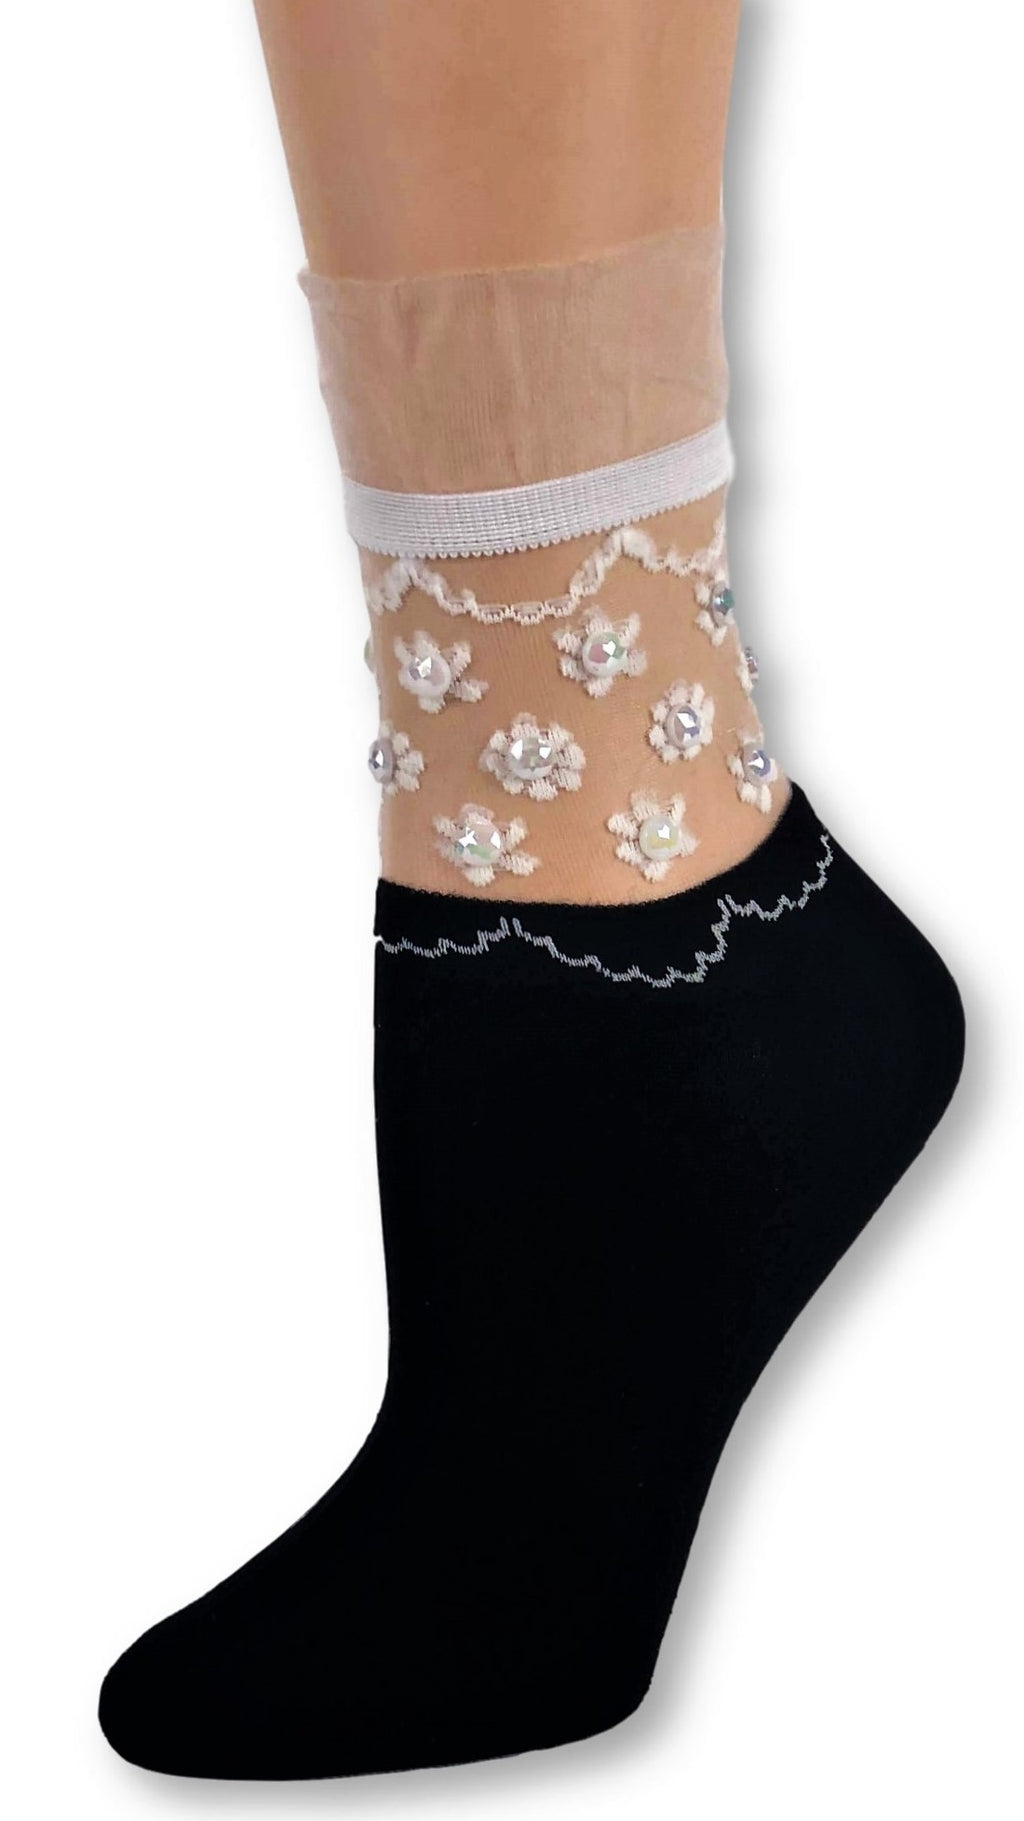 Tiny Flowers Black Custom Sheer Socks with beads